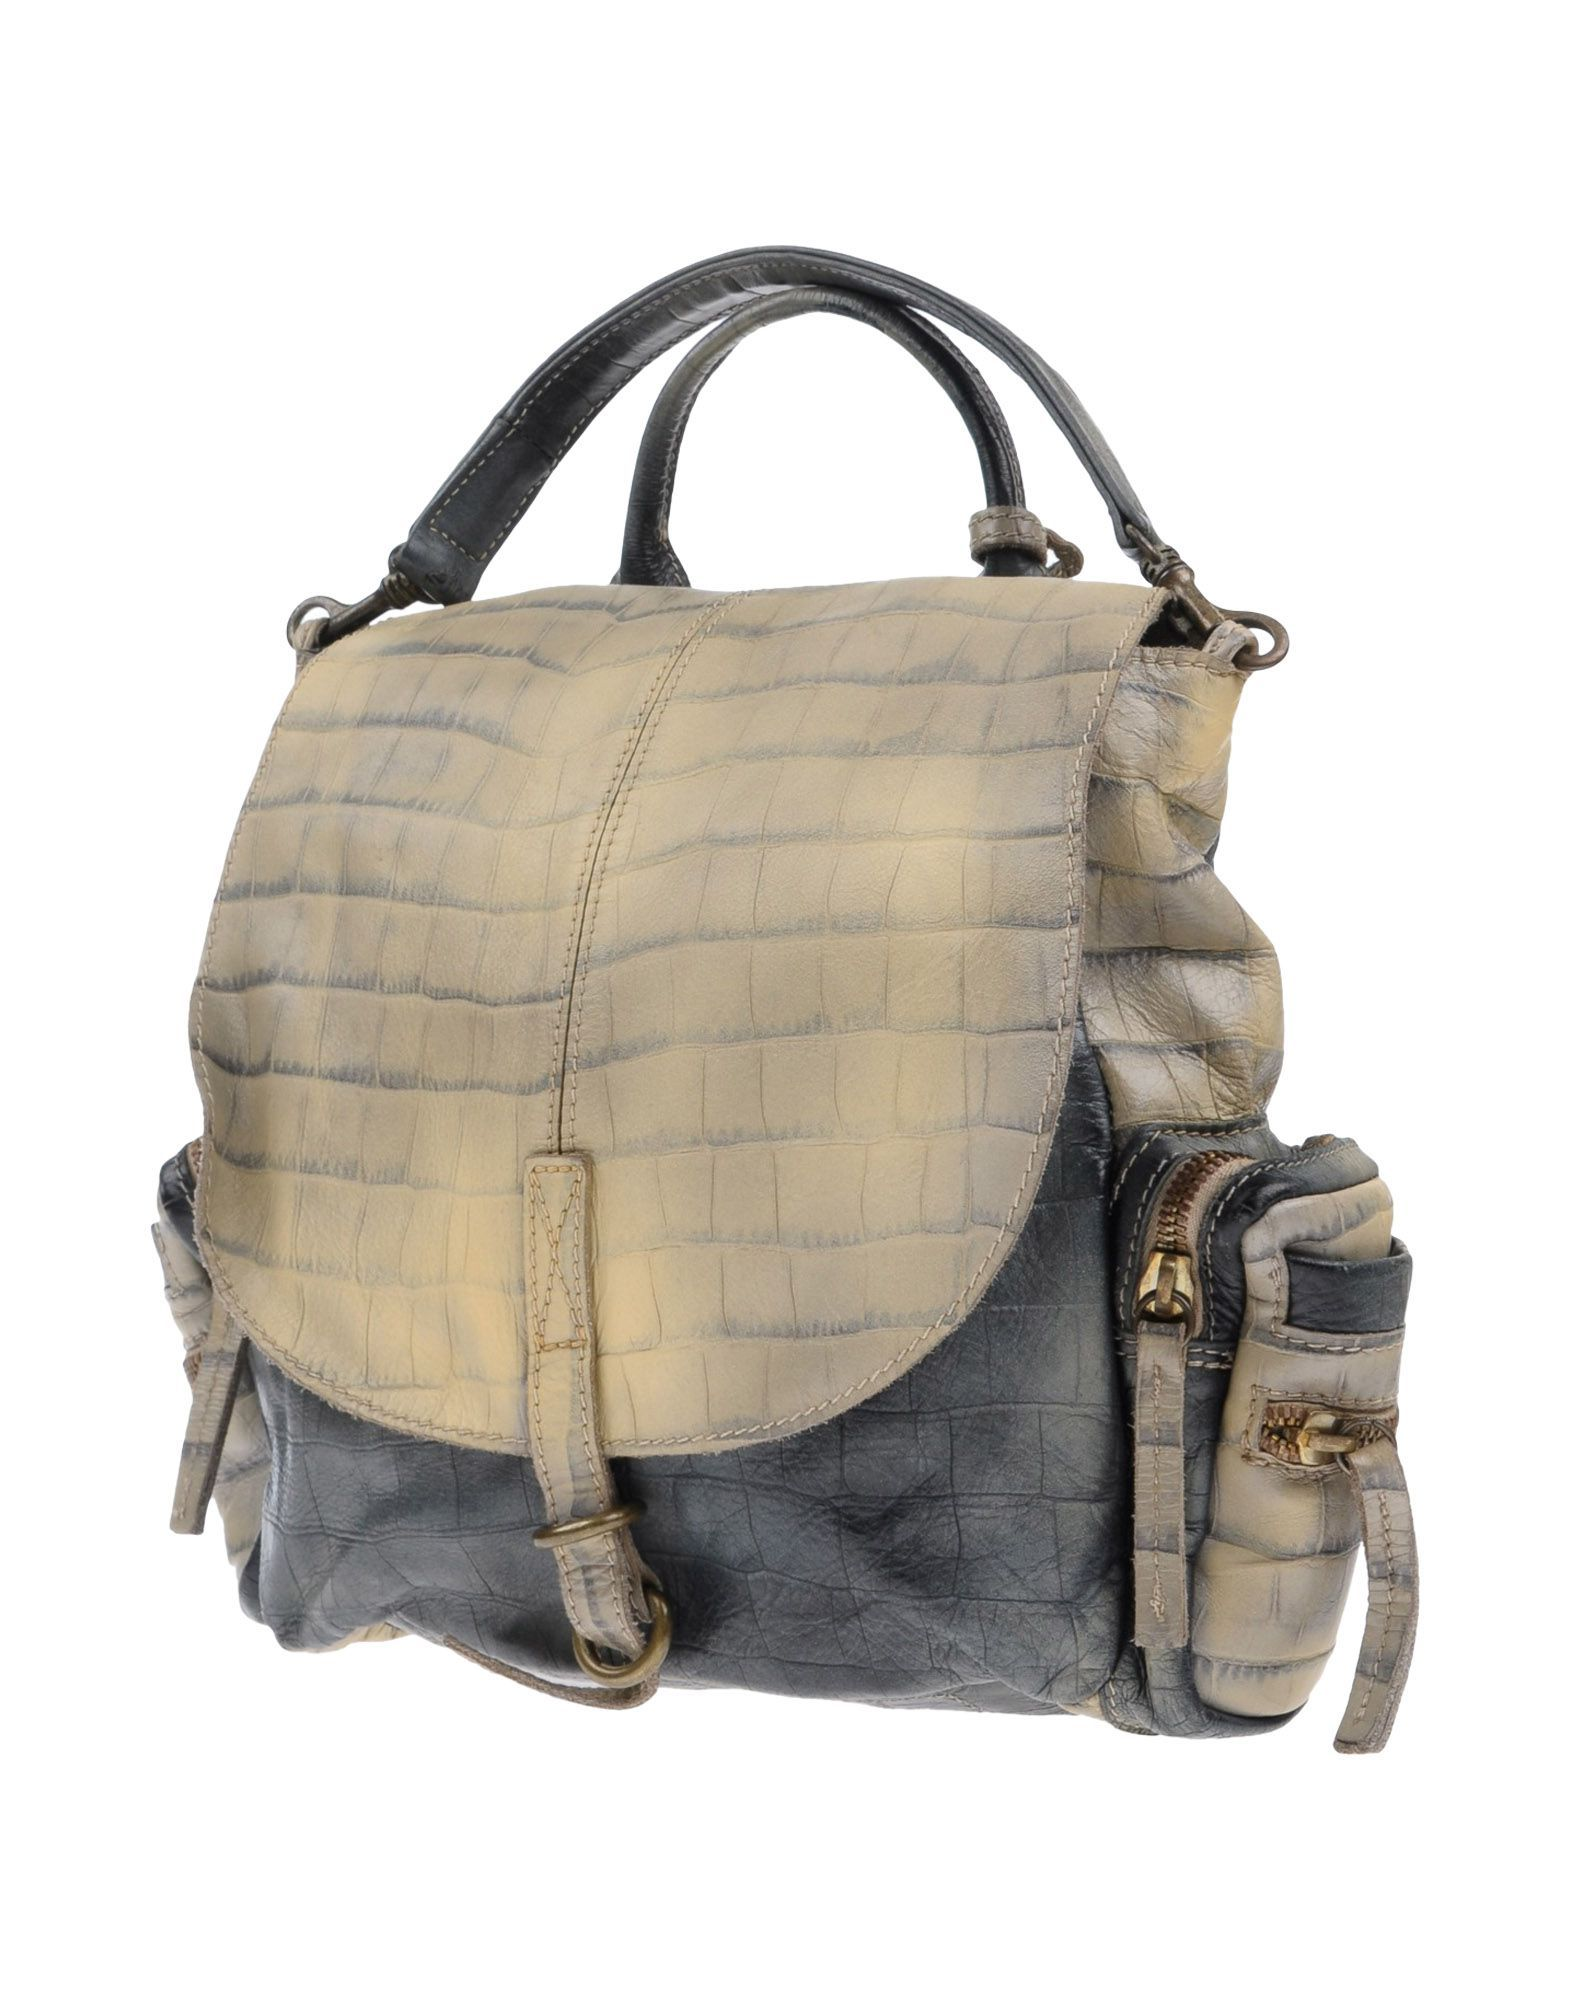 HANDBAGS - Backpacks & Fanny packs Caterina Lucchi Cheap Wiki P2t8ZO42dc